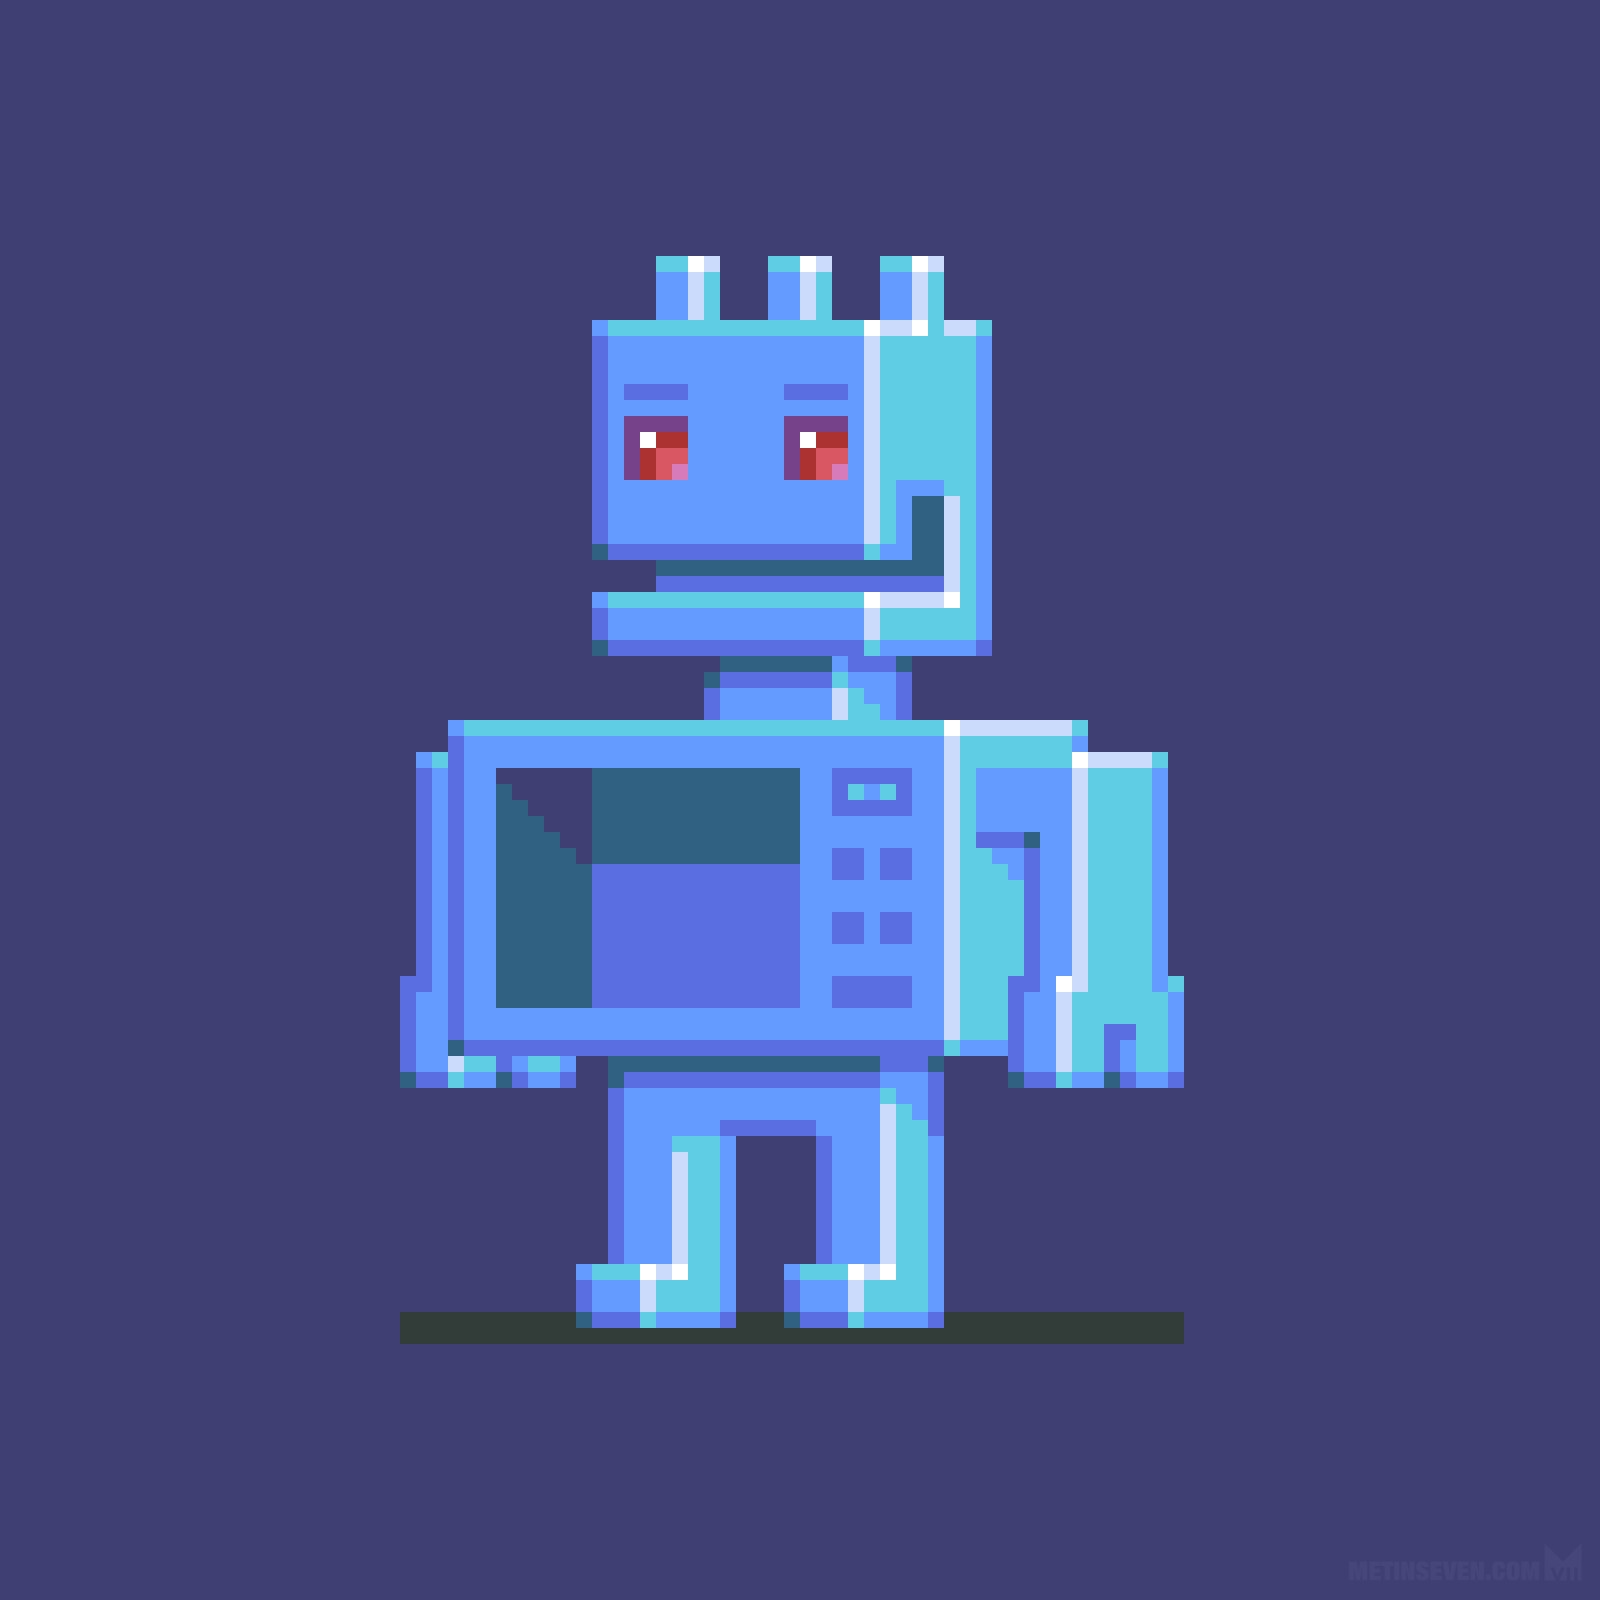 Orthographic side-view robot character sprite design